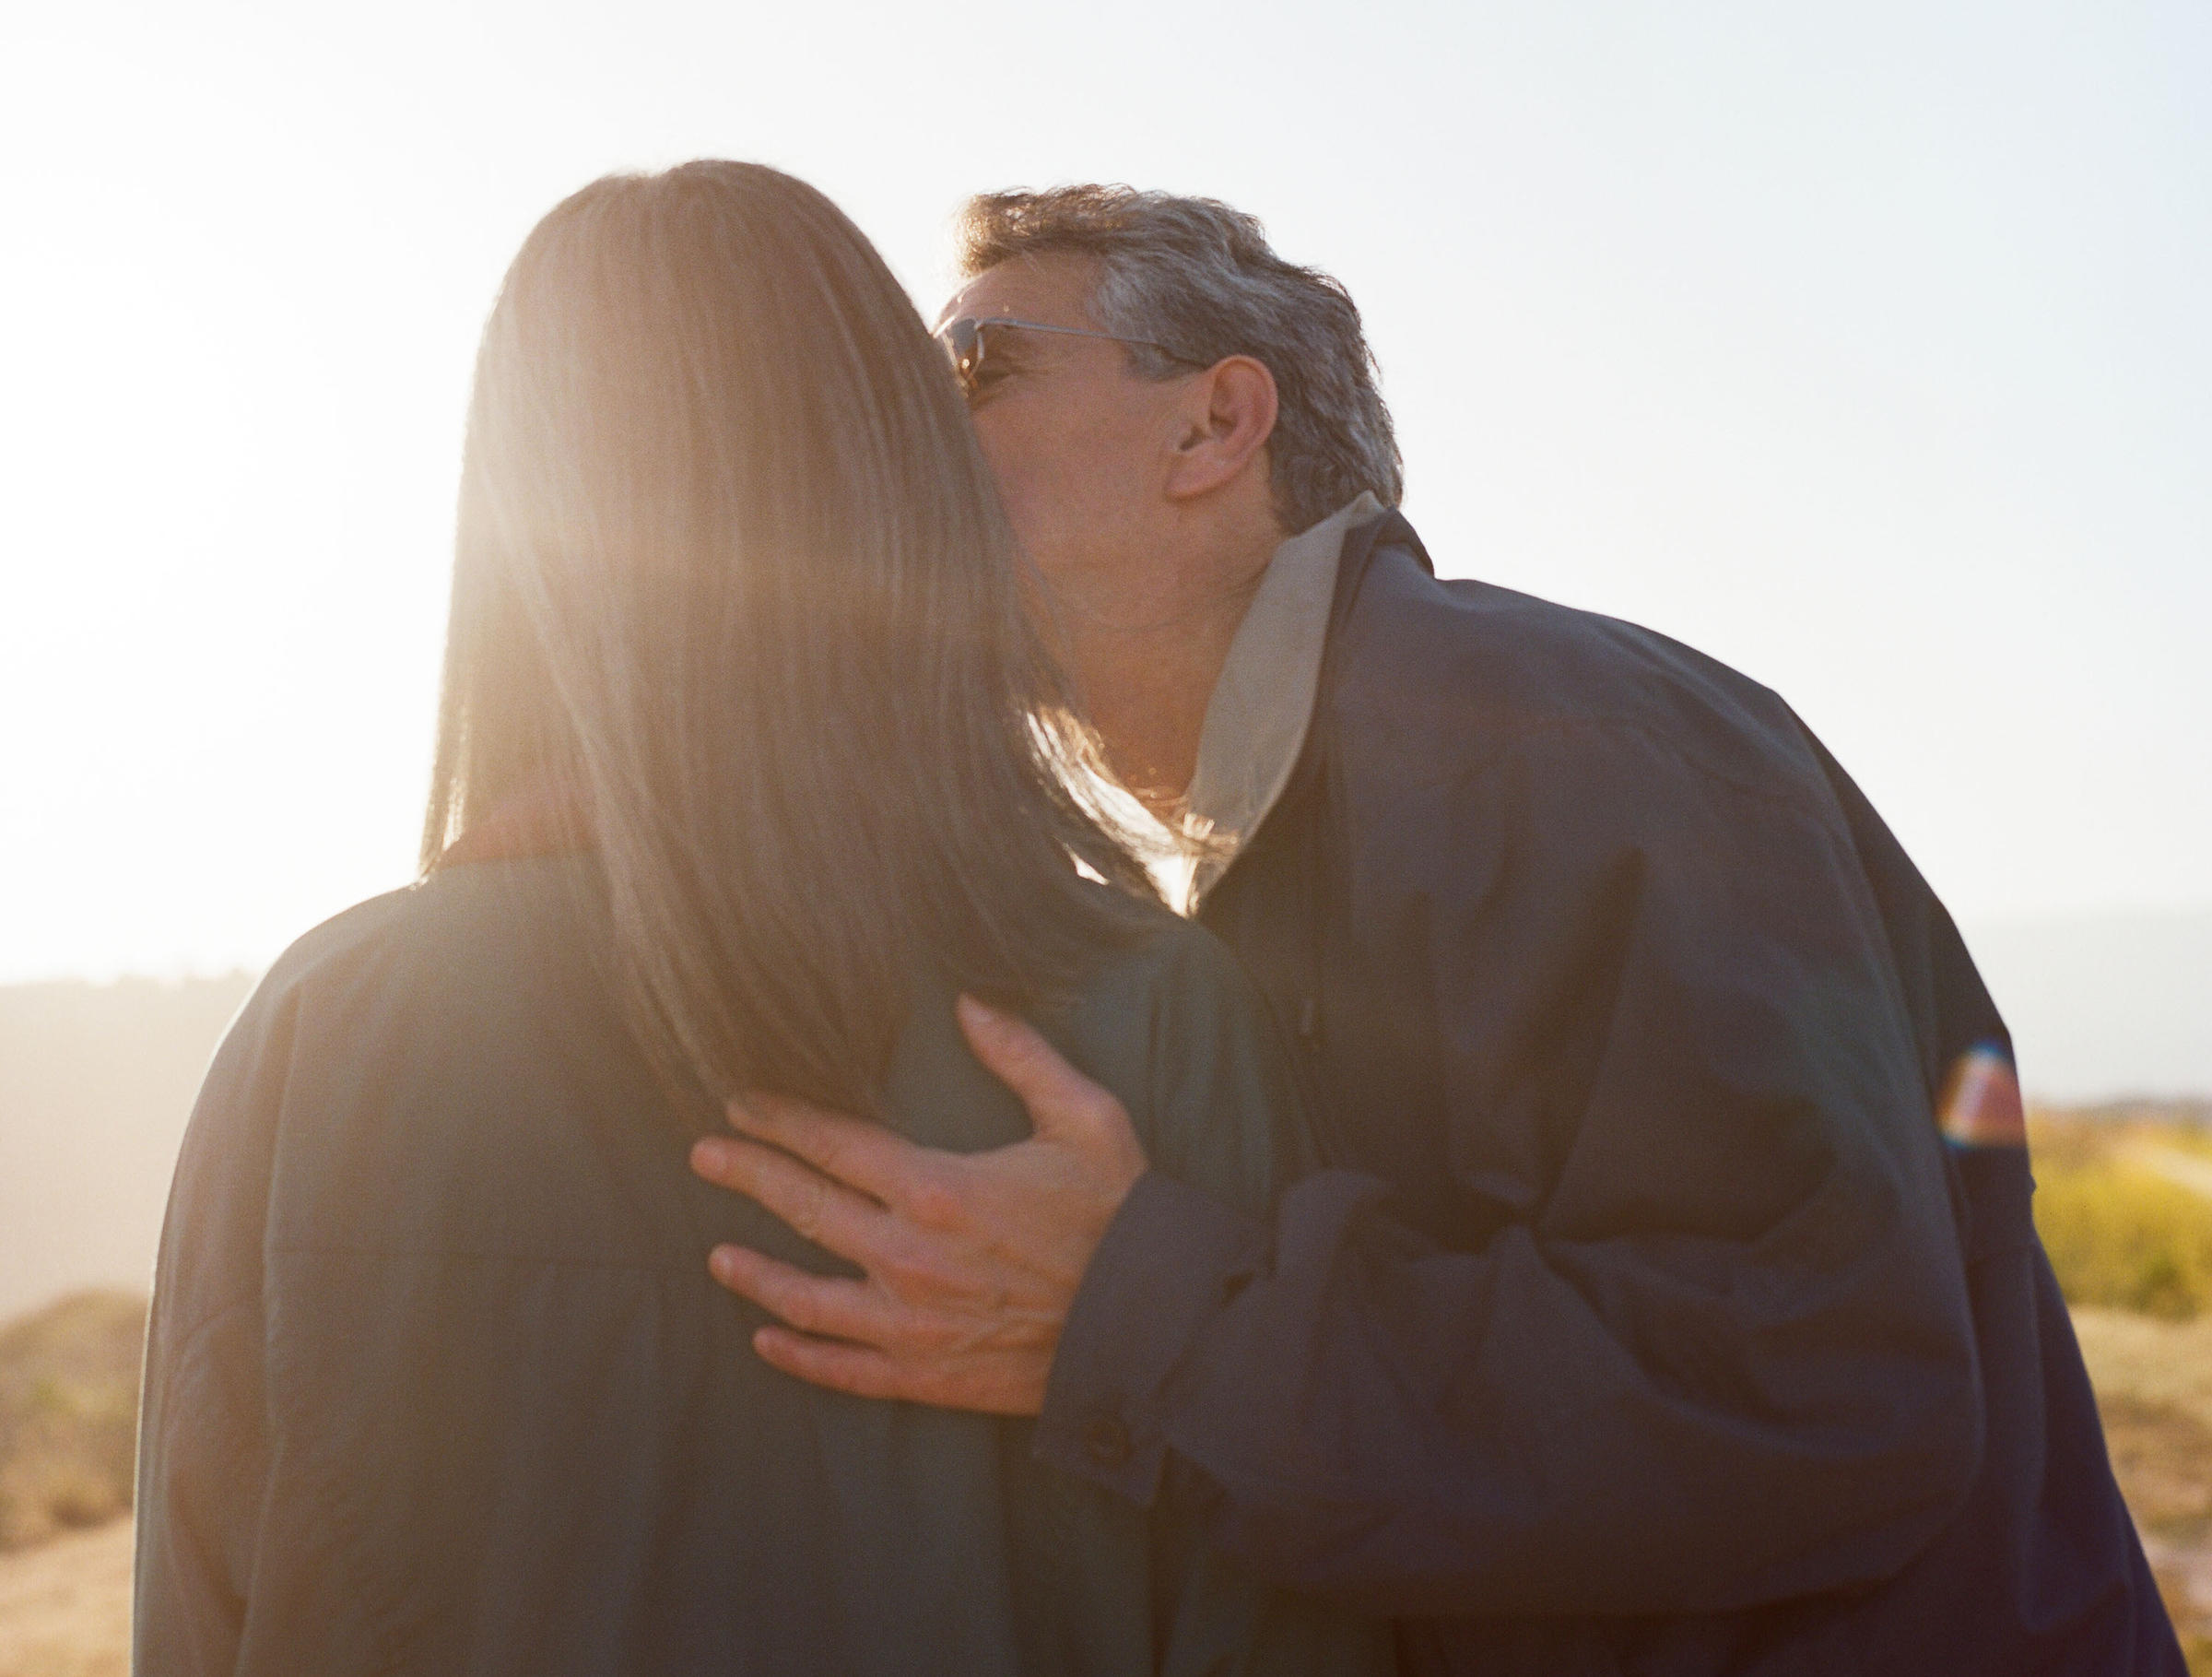 giddings single men over 50 Why being single after 50 is a positive choice for many of us  no introductions to eligible men,  5 things to keep in mind when dating over 50.